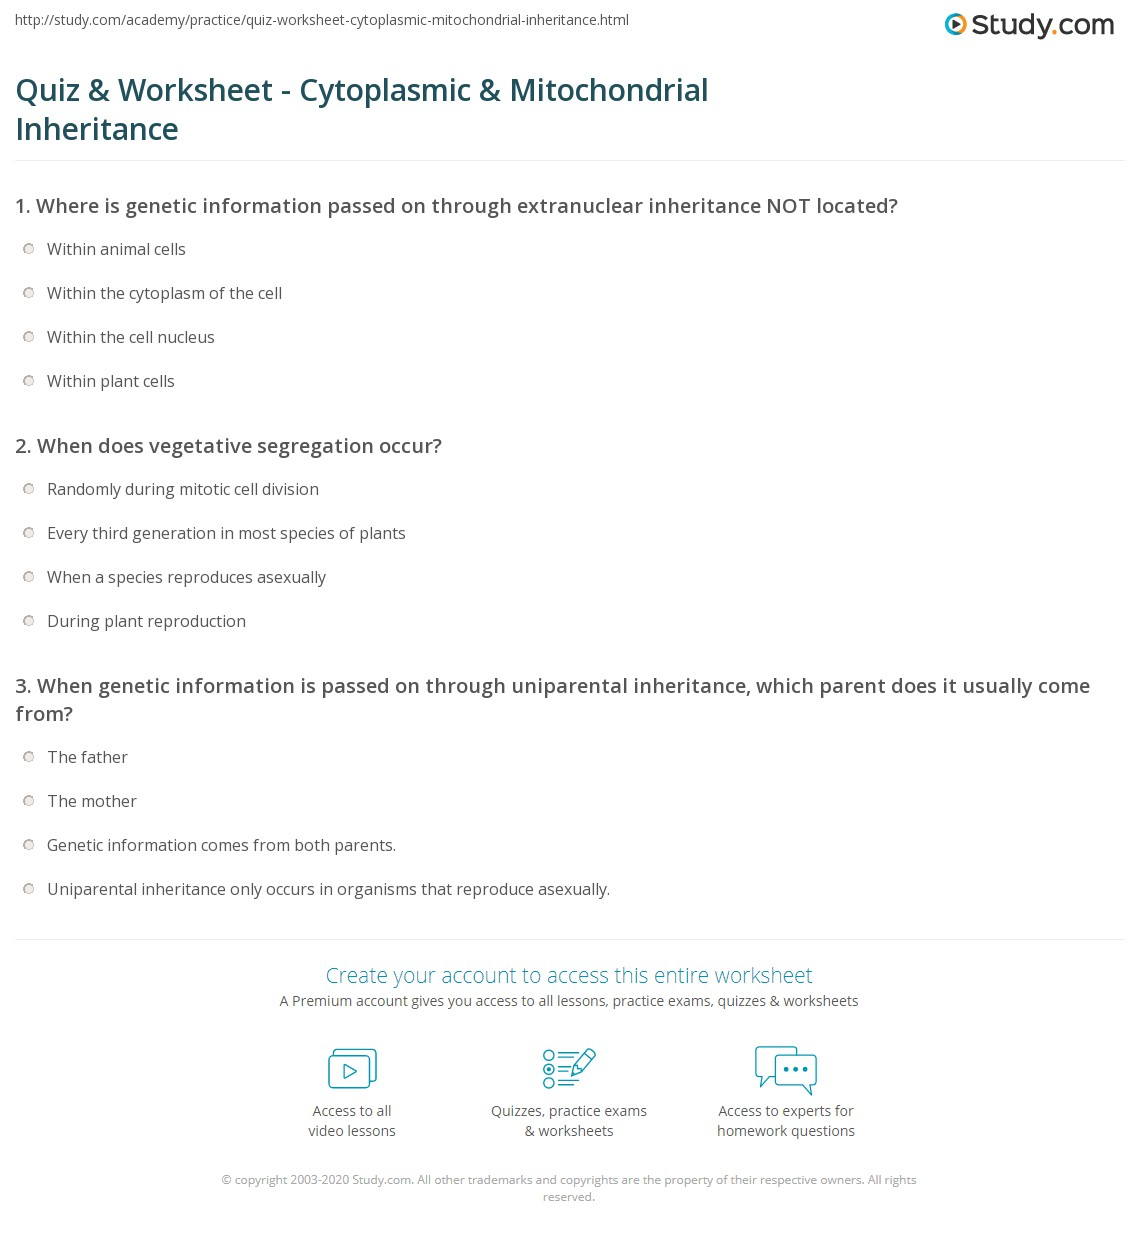 Quiz & Worksheet Cytoplasmic & Mitochondrial Inheritance